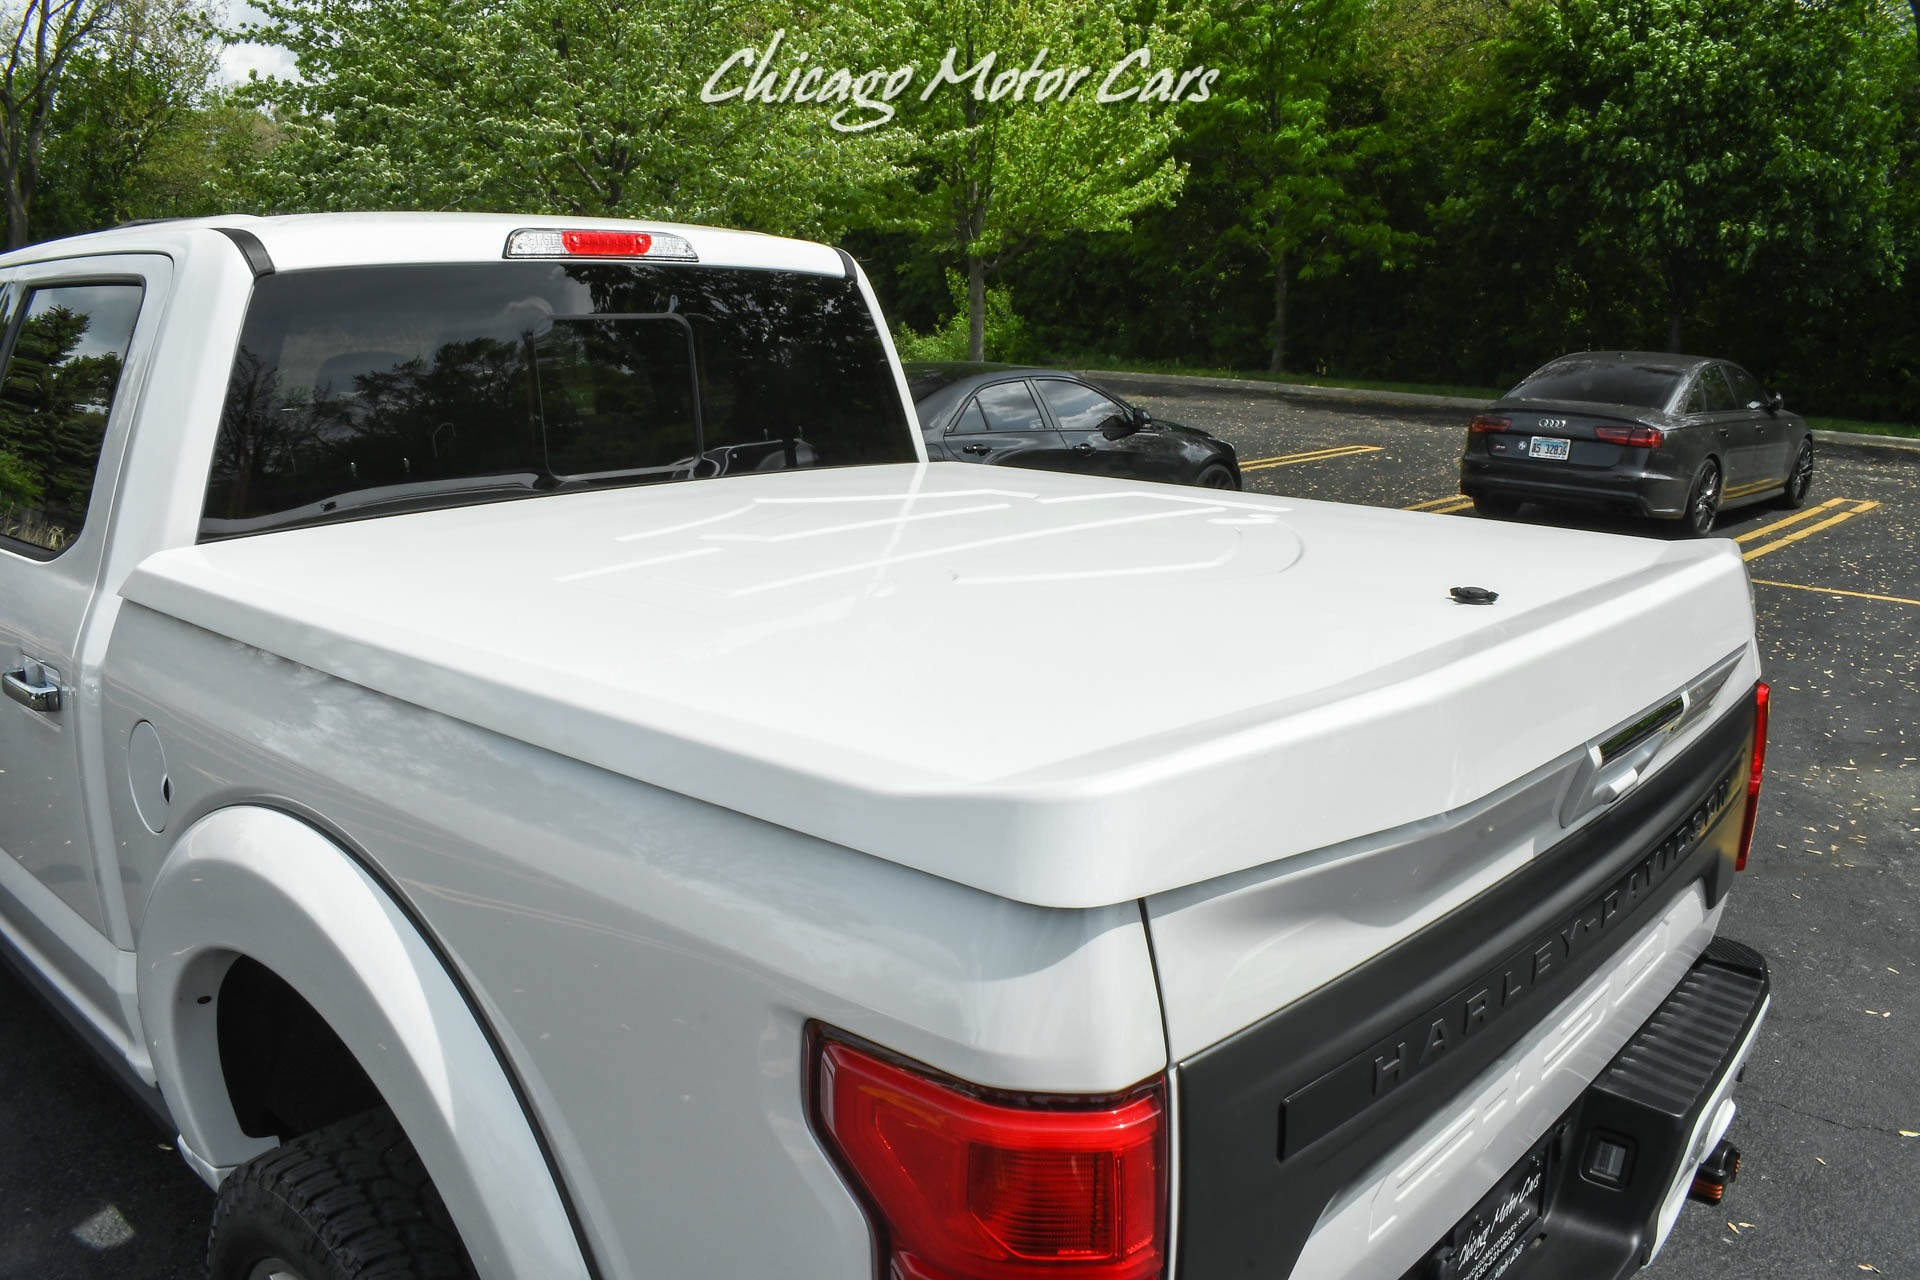 Used-2019-Ford-F-150-Lariat-HARLEY-DAVIDSON-SUPERCHARGED-700HP